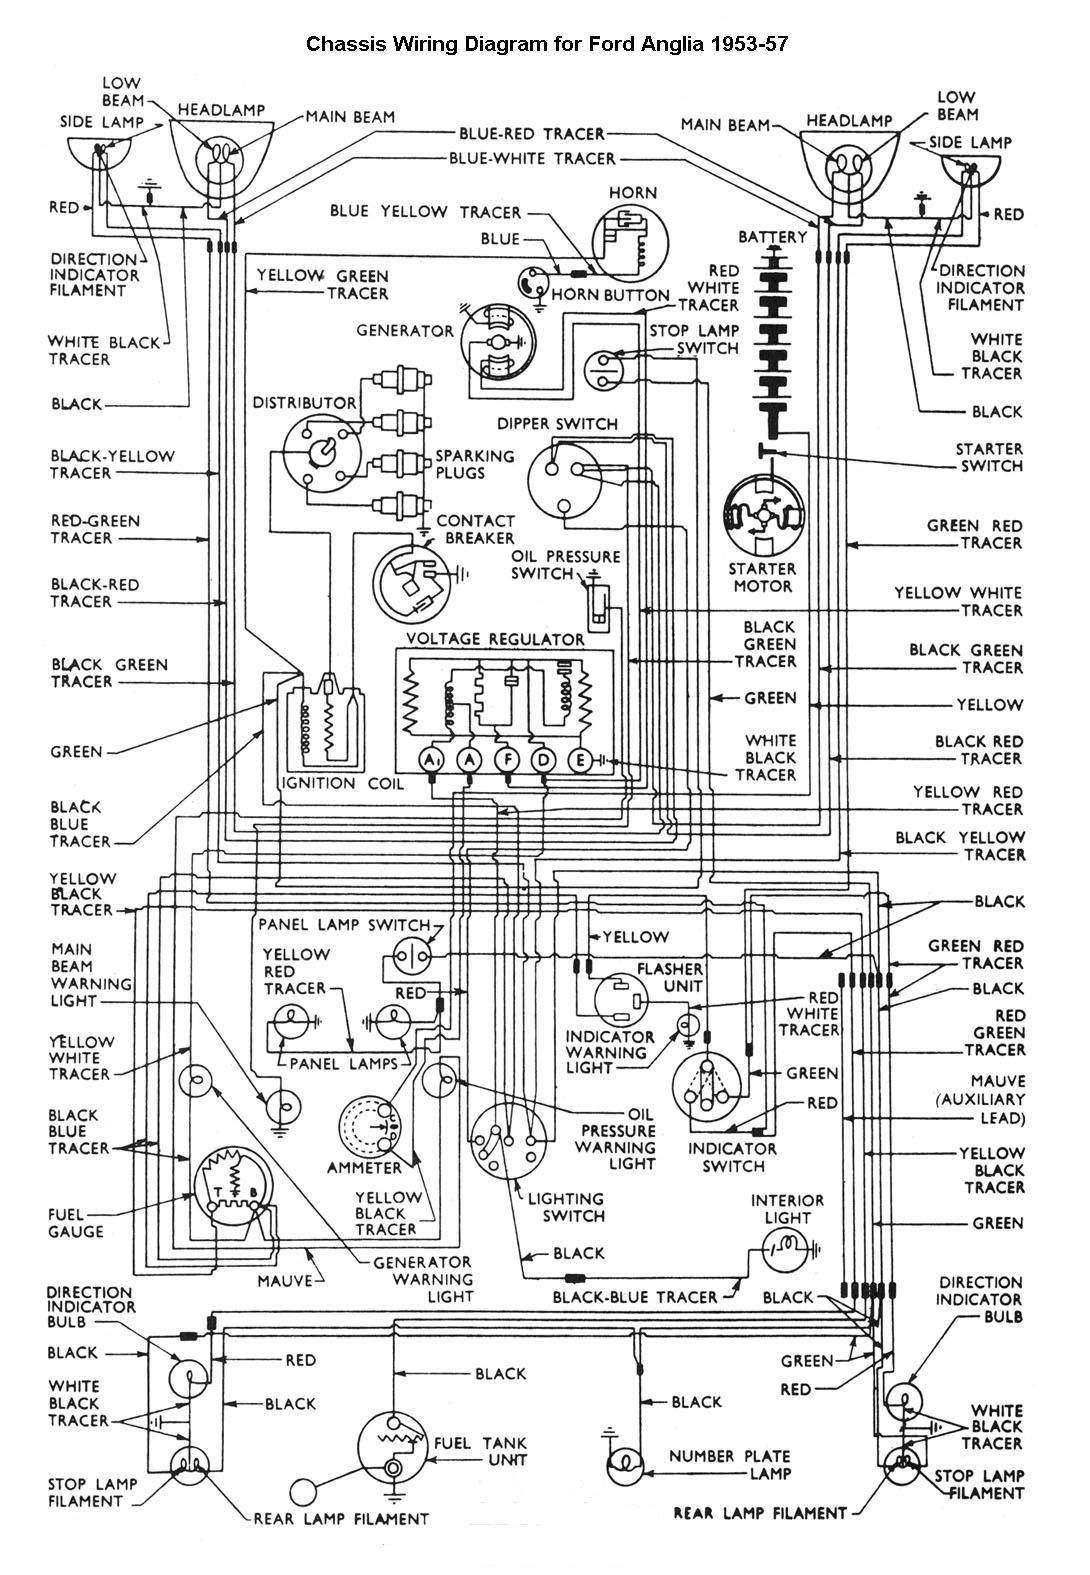 car wiring diagram horse power pinterest diagram cars and car rh pinterest com Coleman Generator Wiring Diagram Coleman Generator Wiring Diagram